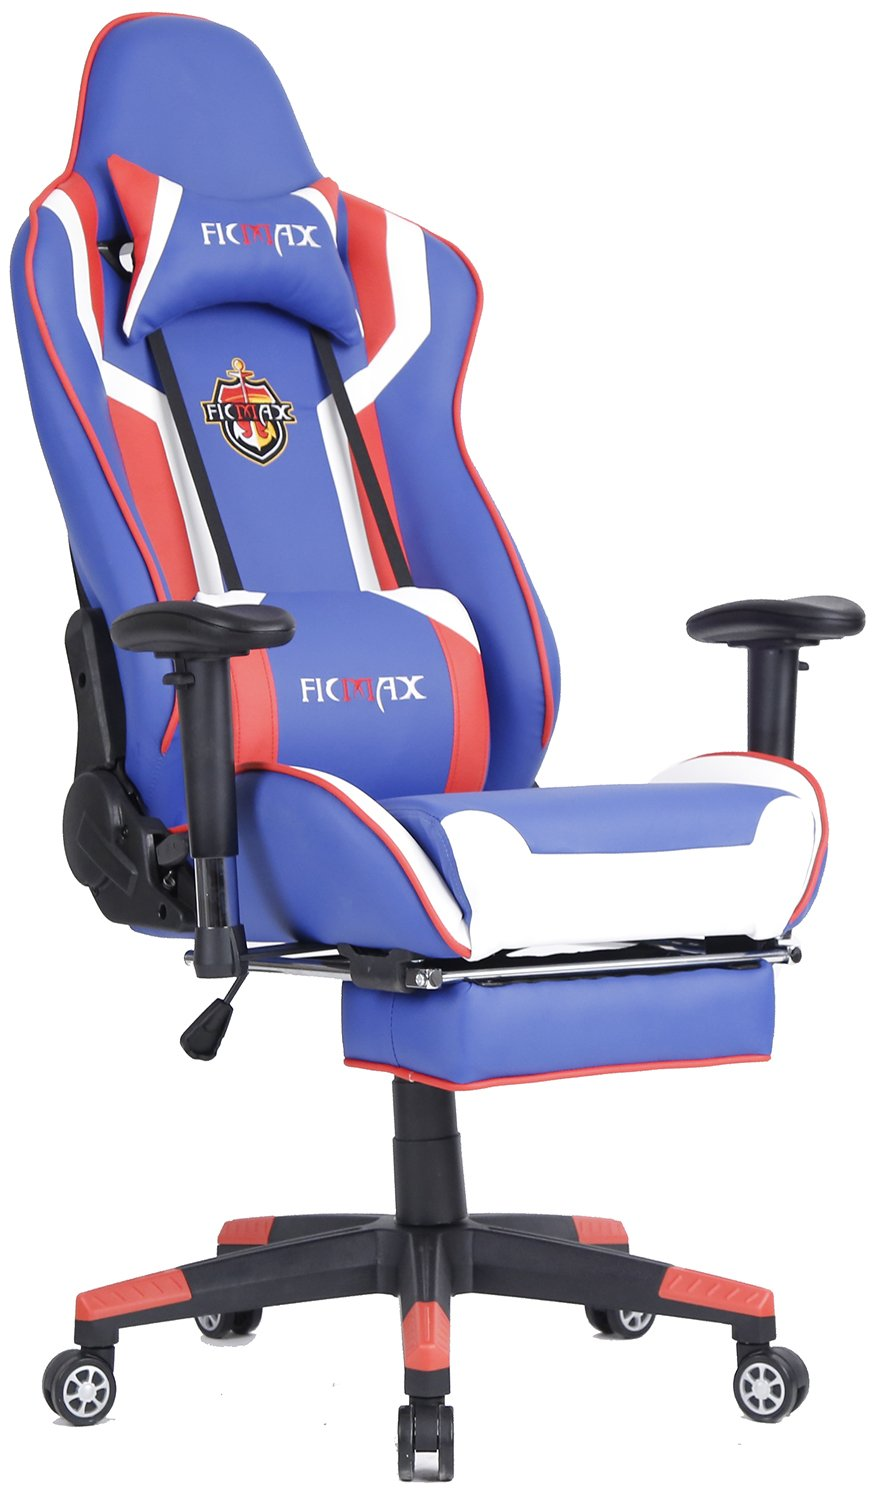 Ficmax Ergonomic Computer Racing Chair Leather Swivel Executive Office Chair Recliner Rocker Tilt E-sports Chair with Adjustable Headrest & Lumbar Massage Support and Retractable Footrest (Blue/Red)